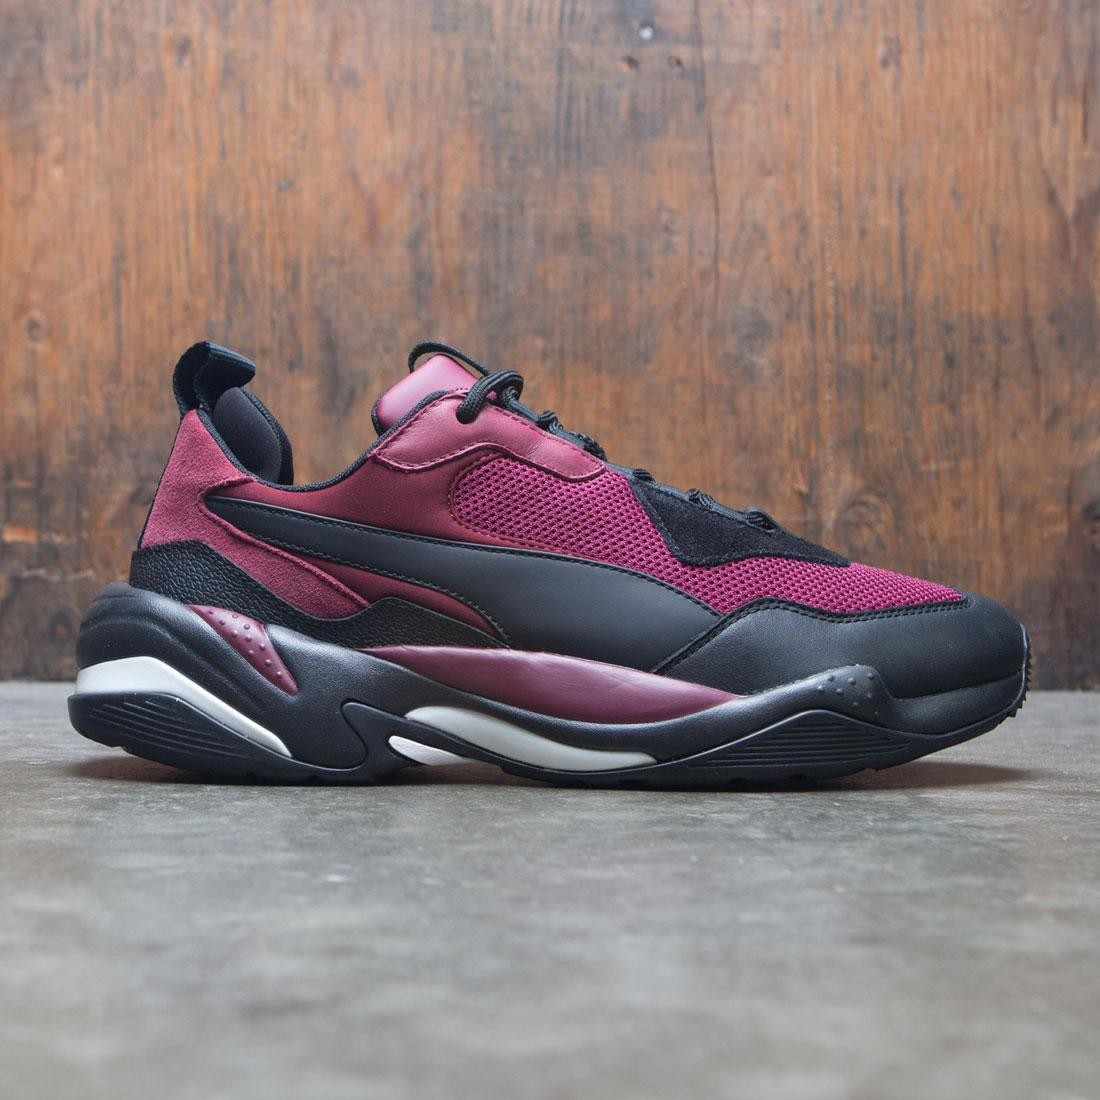 7877bed309e Puma Men Thunder Spectra red burgundy tawny